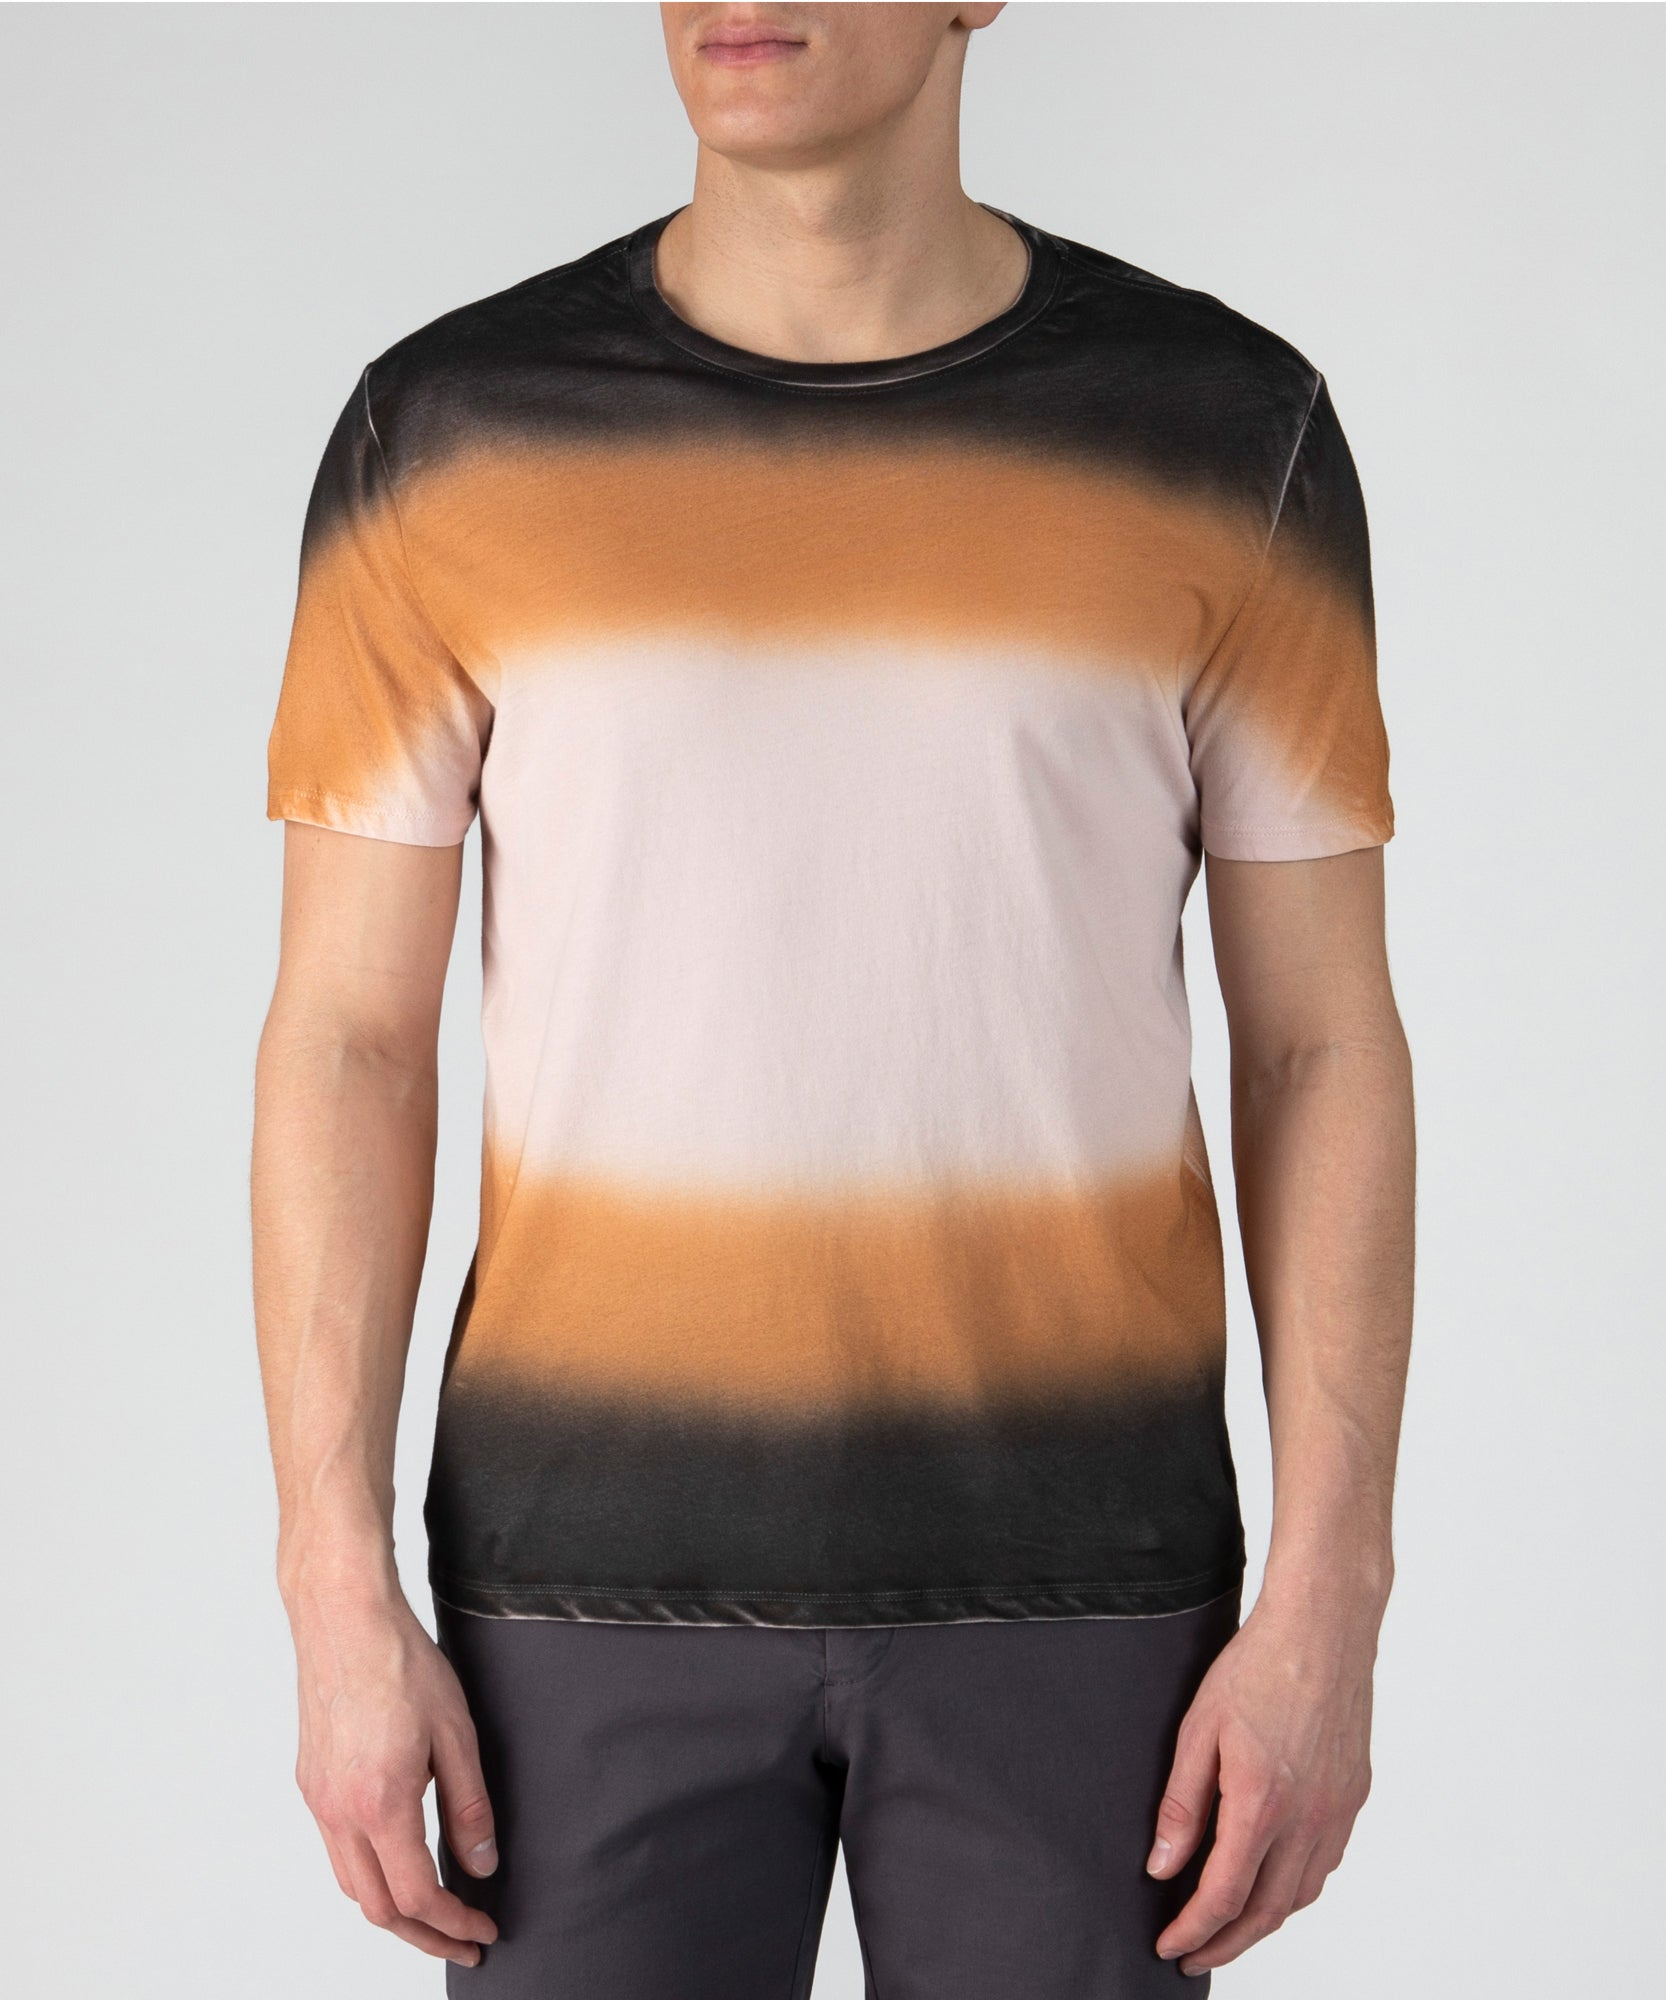 Classic Jersey Dip Dye Crew Neck Tee - Multi Color Combo- Men's Cotton Short Sleeve T-shirt by ATM Anthony Thomas Melillo